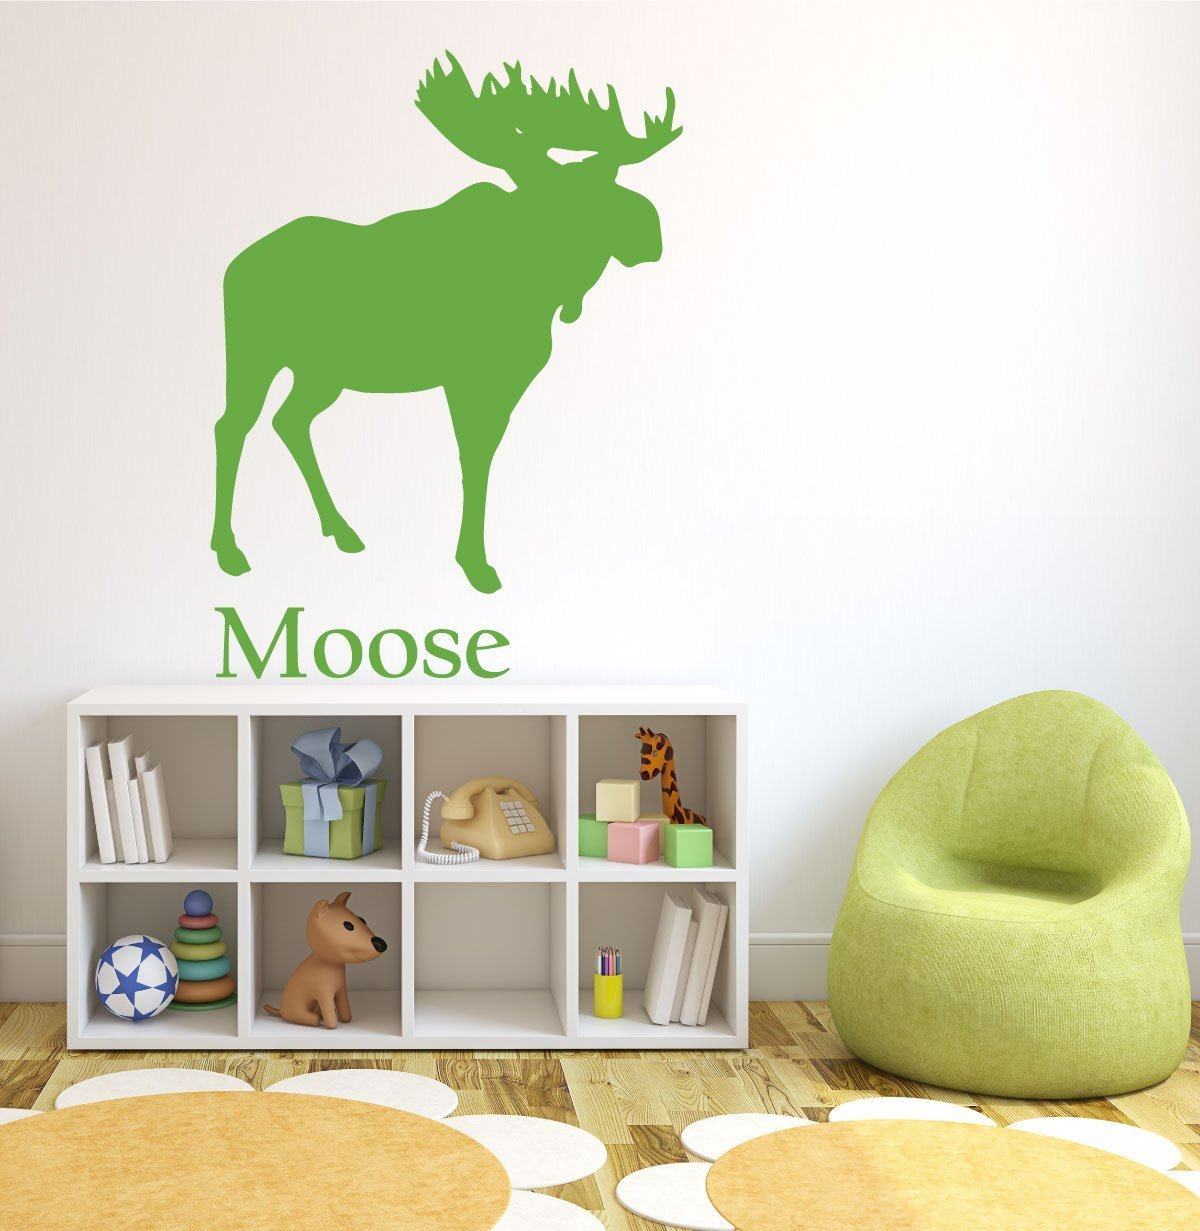 Forest Animal Wall Decals - Moose - North American Animals